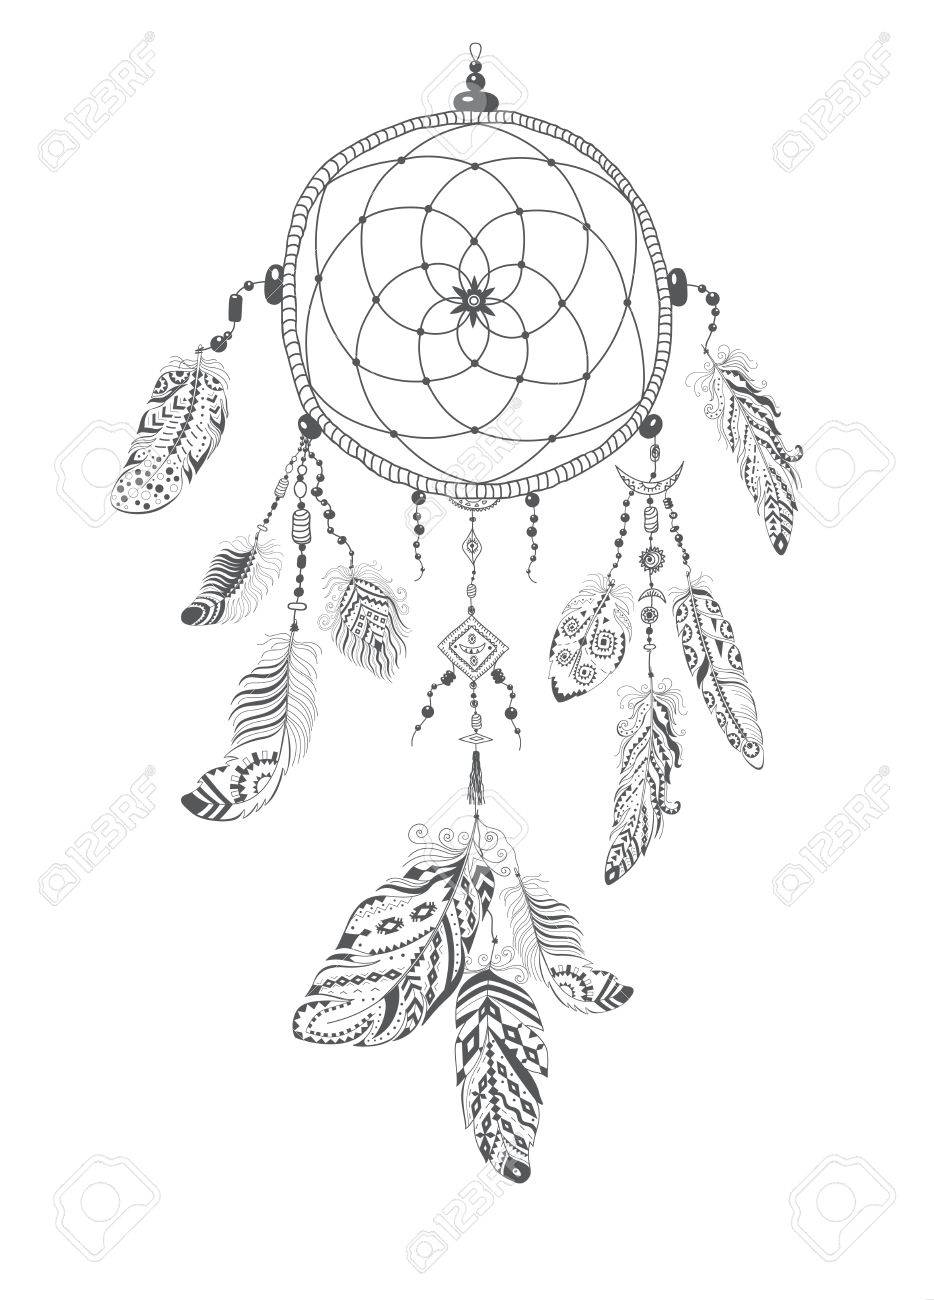 934x1300 Native American Indian Talisman Dream Catcher With Feathers